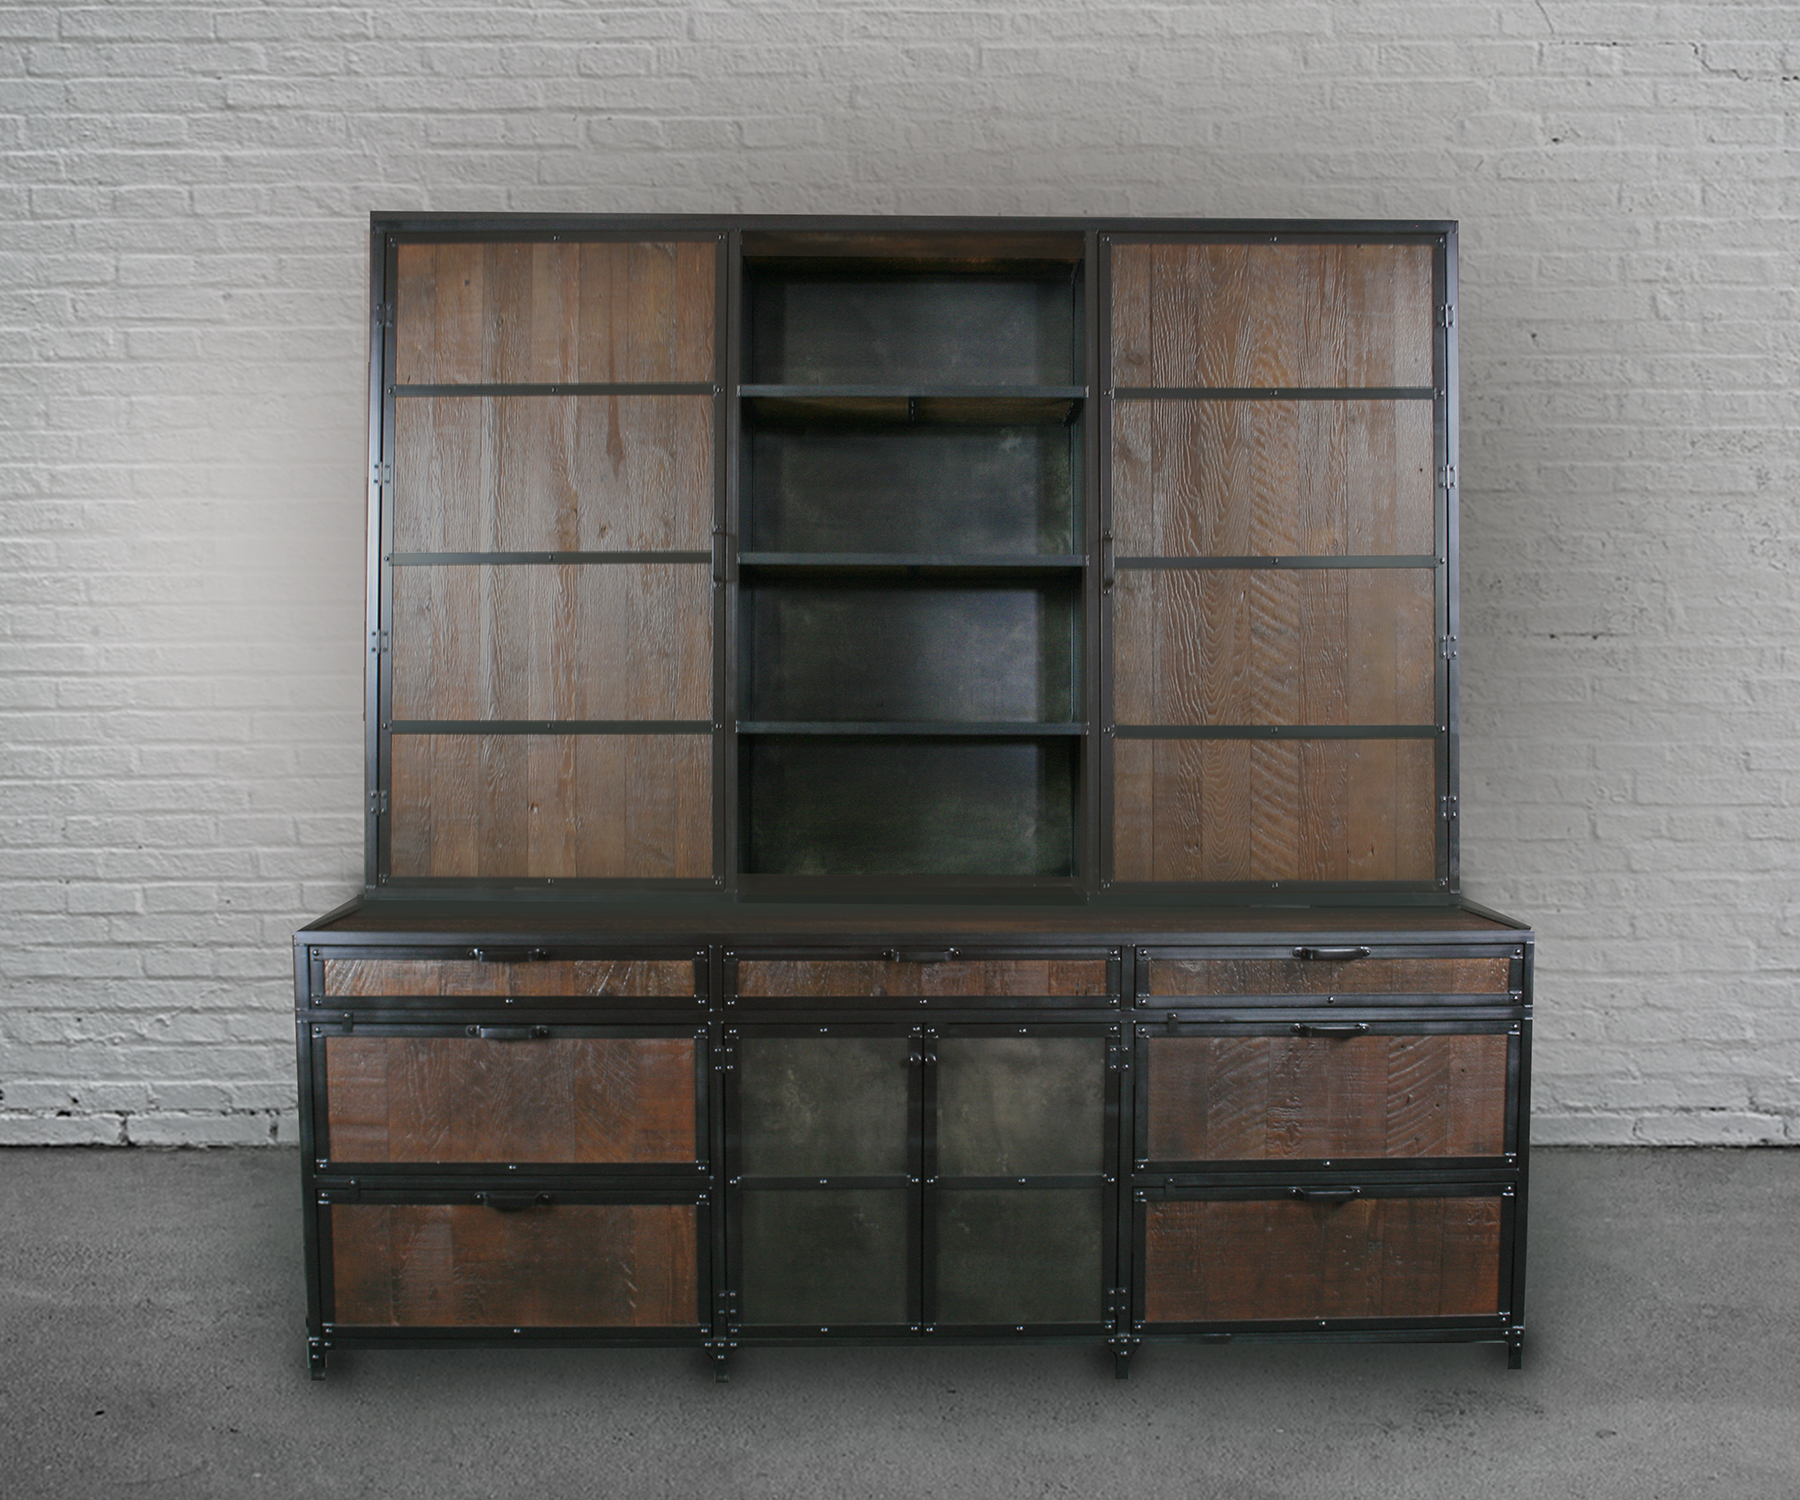 vintage style reclaimed wood file cabinet with hutch shelving for additional storage.